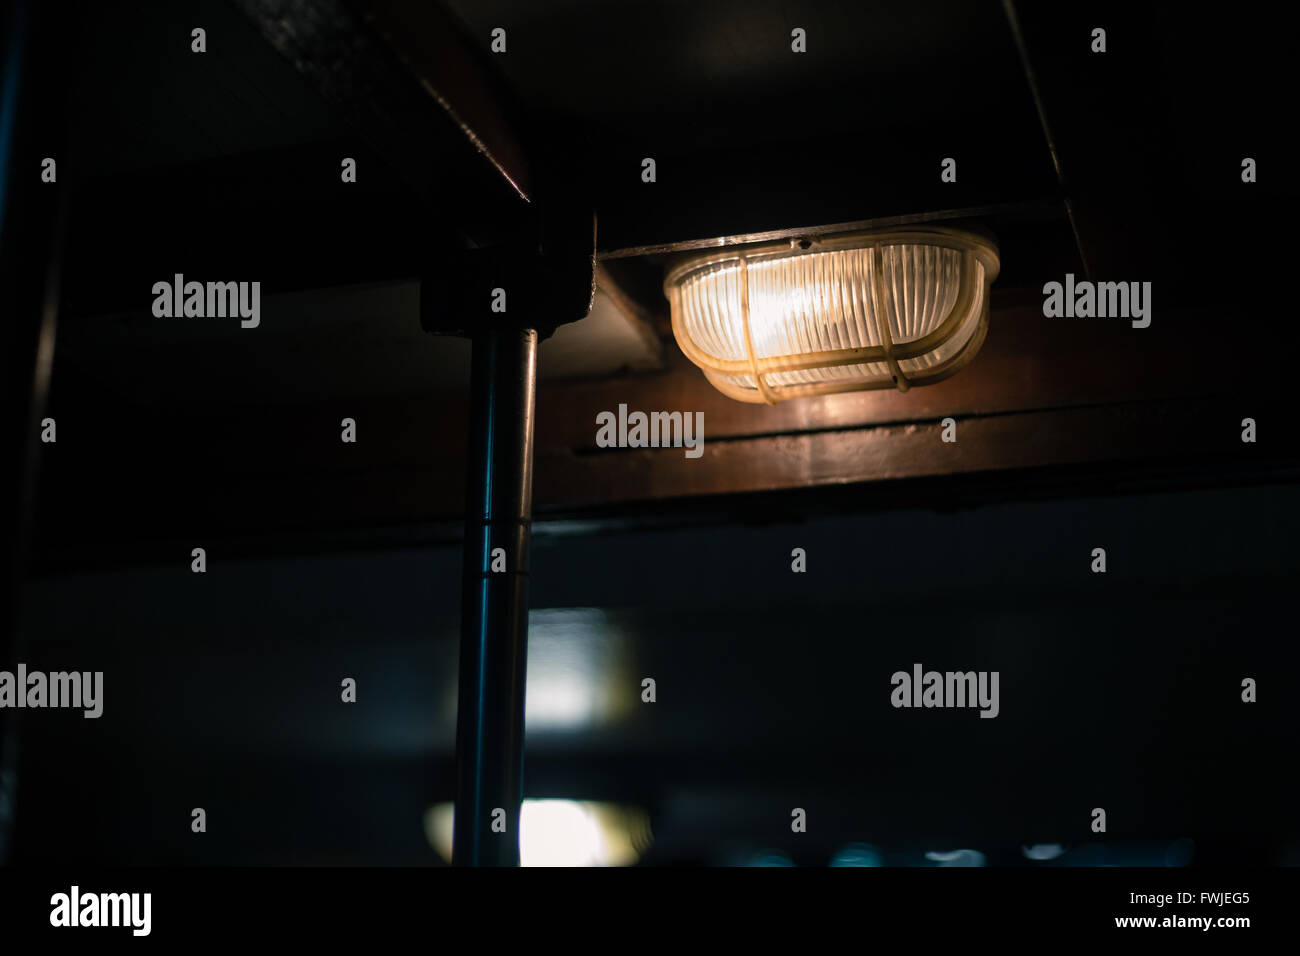 Low Angle View Of Illuminated Light Fixture On Ceiling - Stock Image